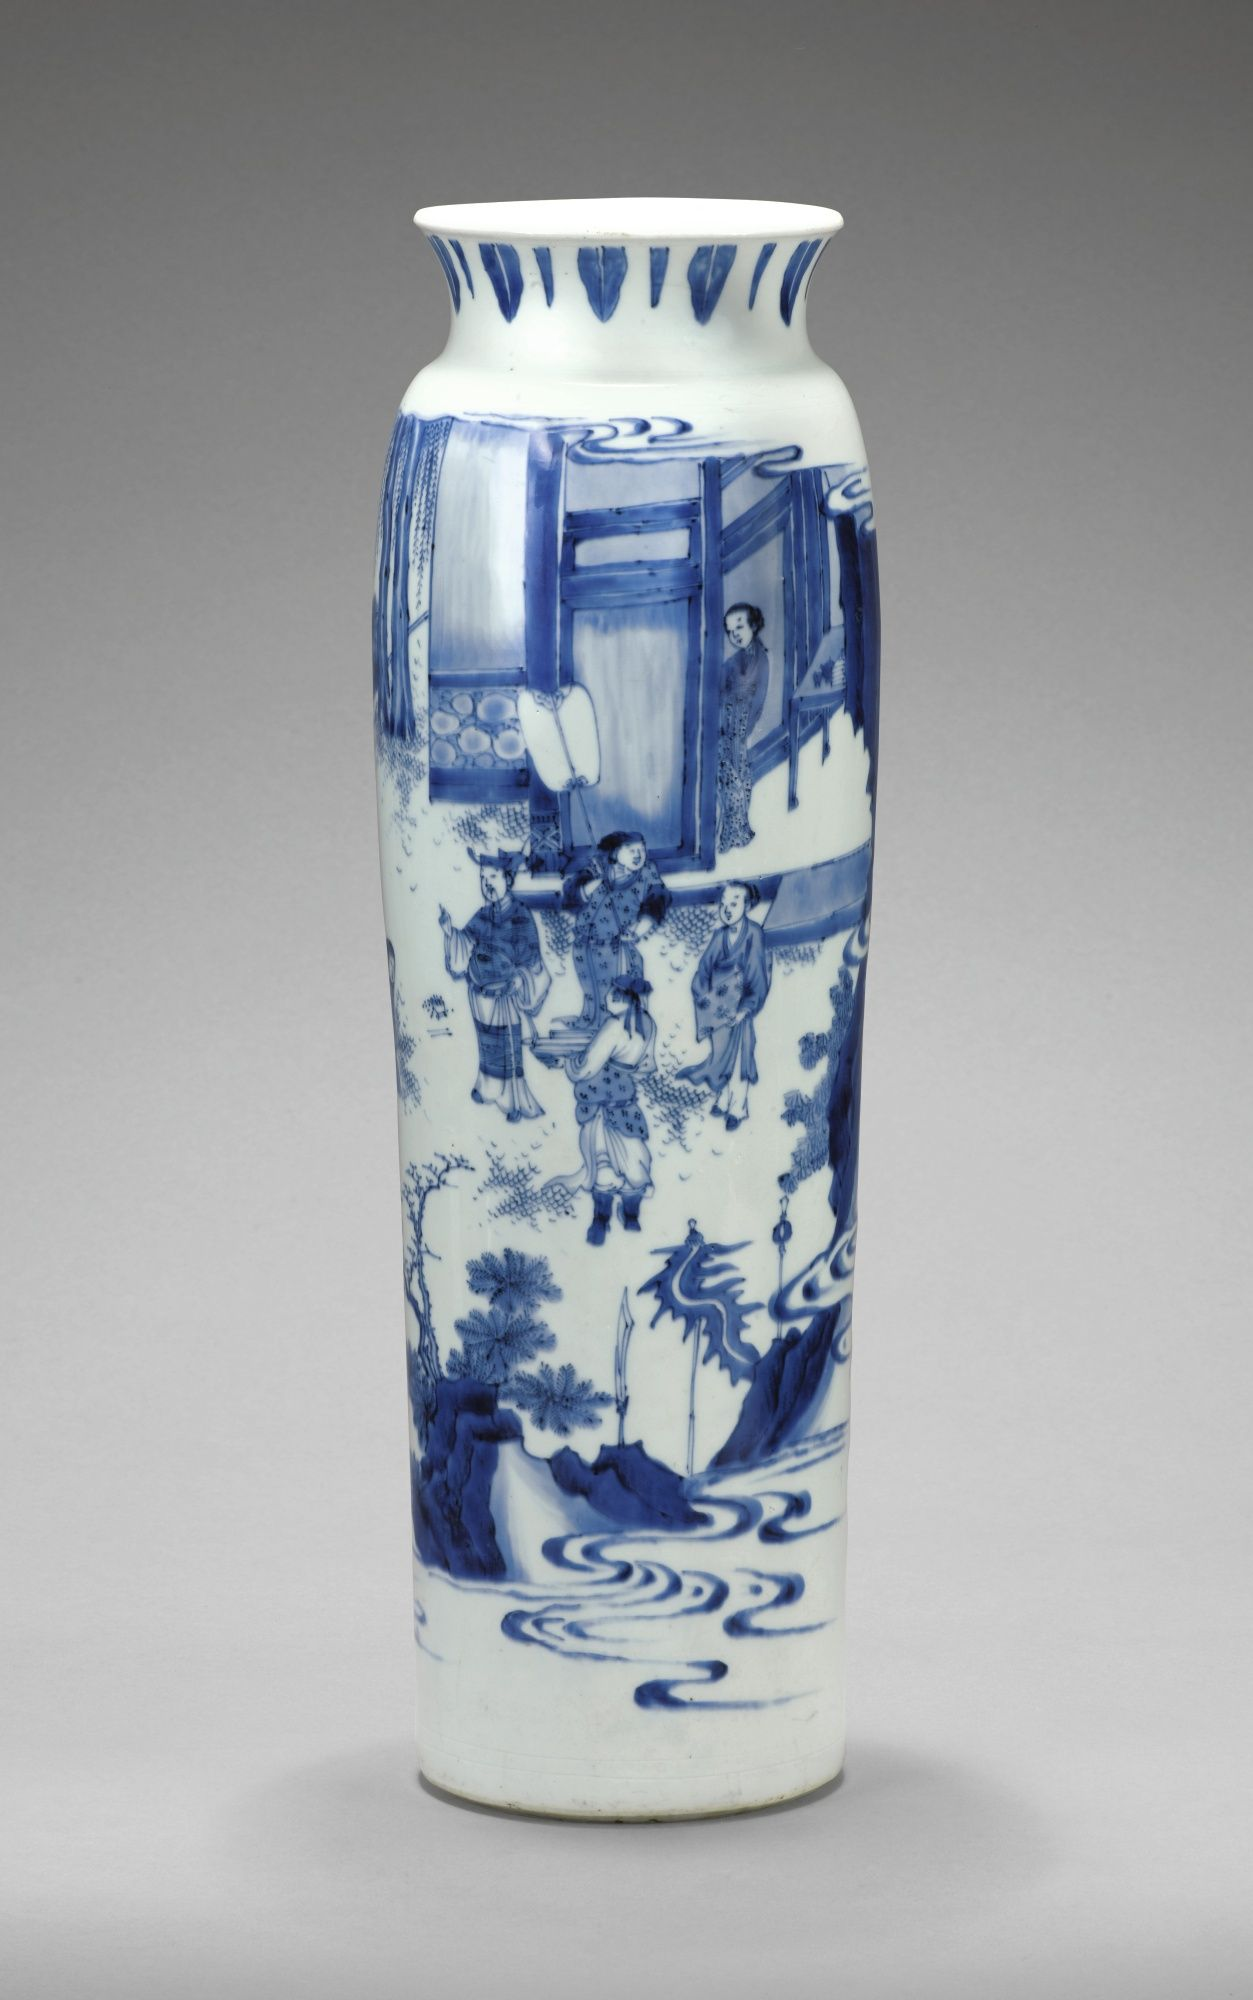 FINE AND LARGE BLUE AND WHITE SLEEVE VASE, TRANSITIONAL PERIOD, CA. 1640/1680